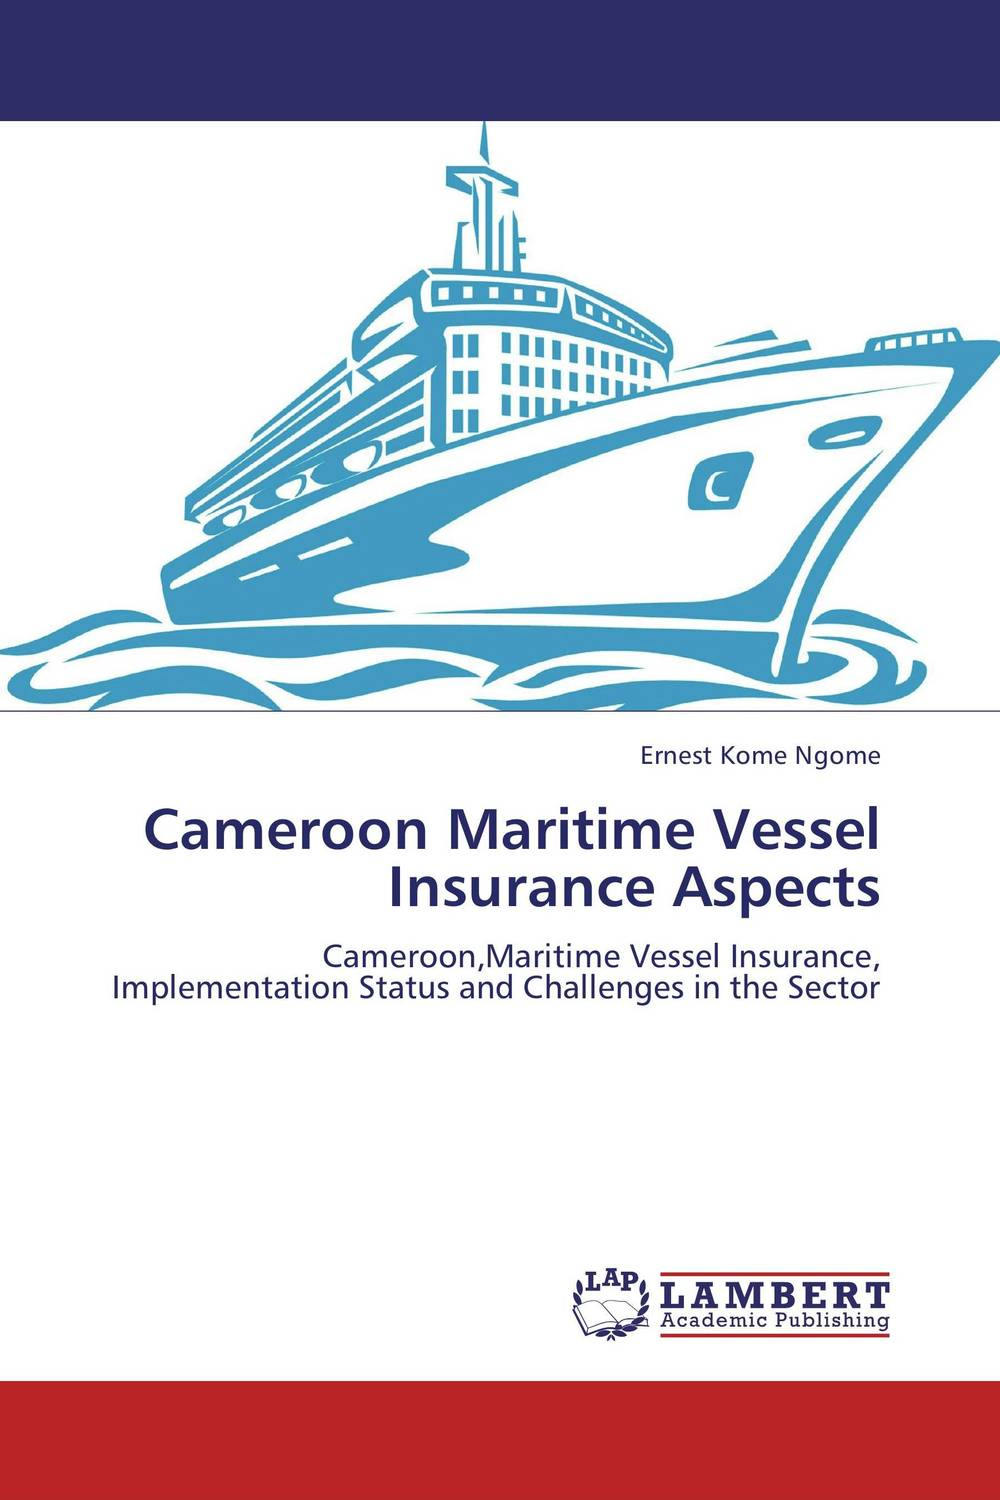 Cameroon Maritime Vessel Insurance Aspects